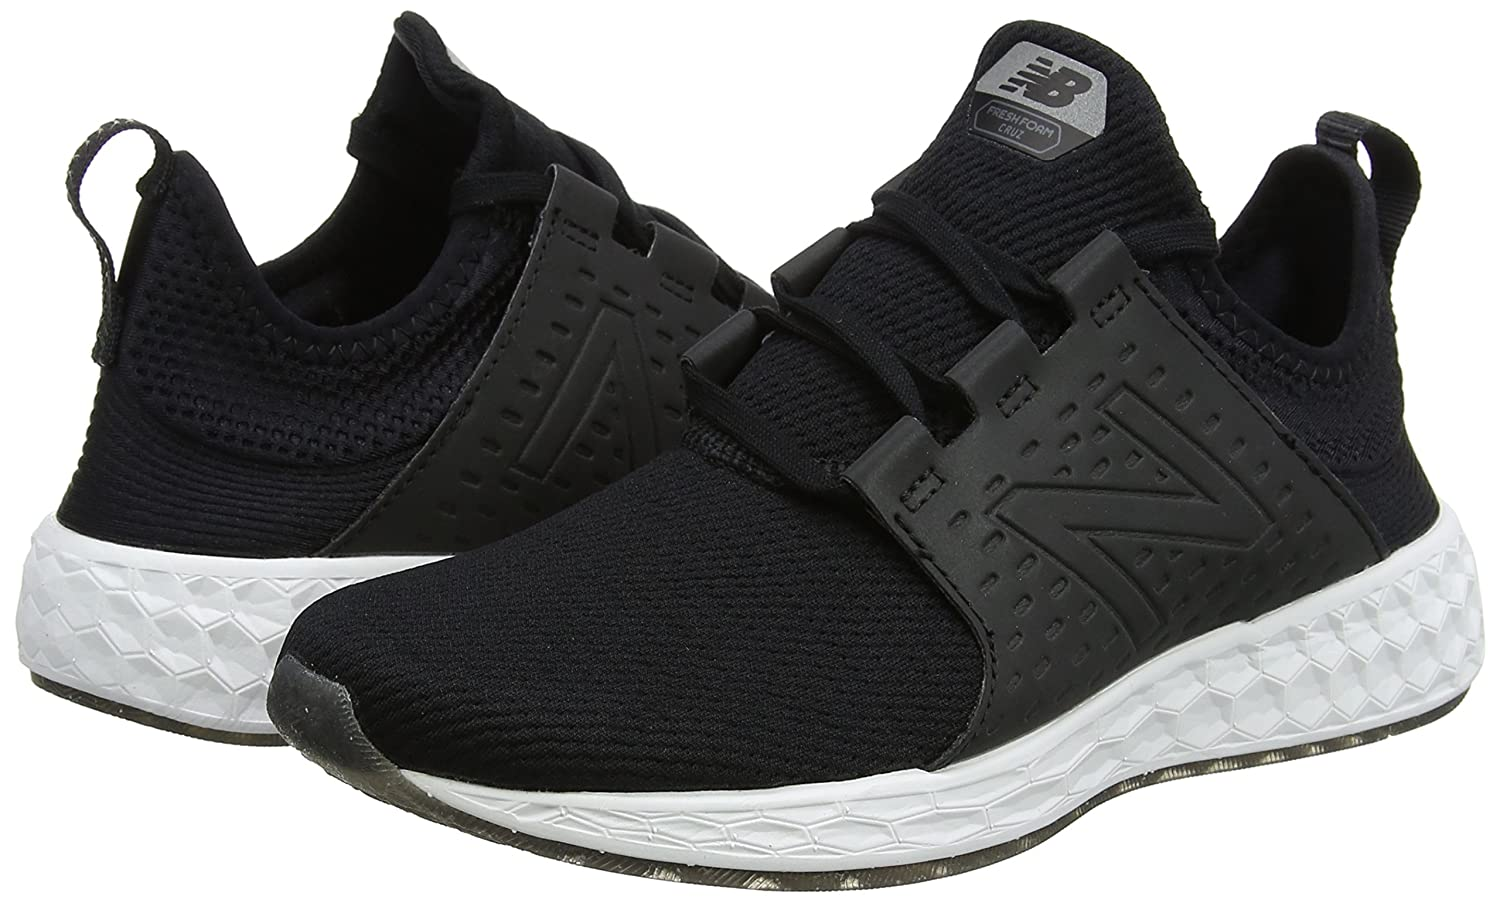 New Balance Women's Fresh Foam Cruz V1 Retro Hoodie Running Shoe B0751DSR33 12 D US|black